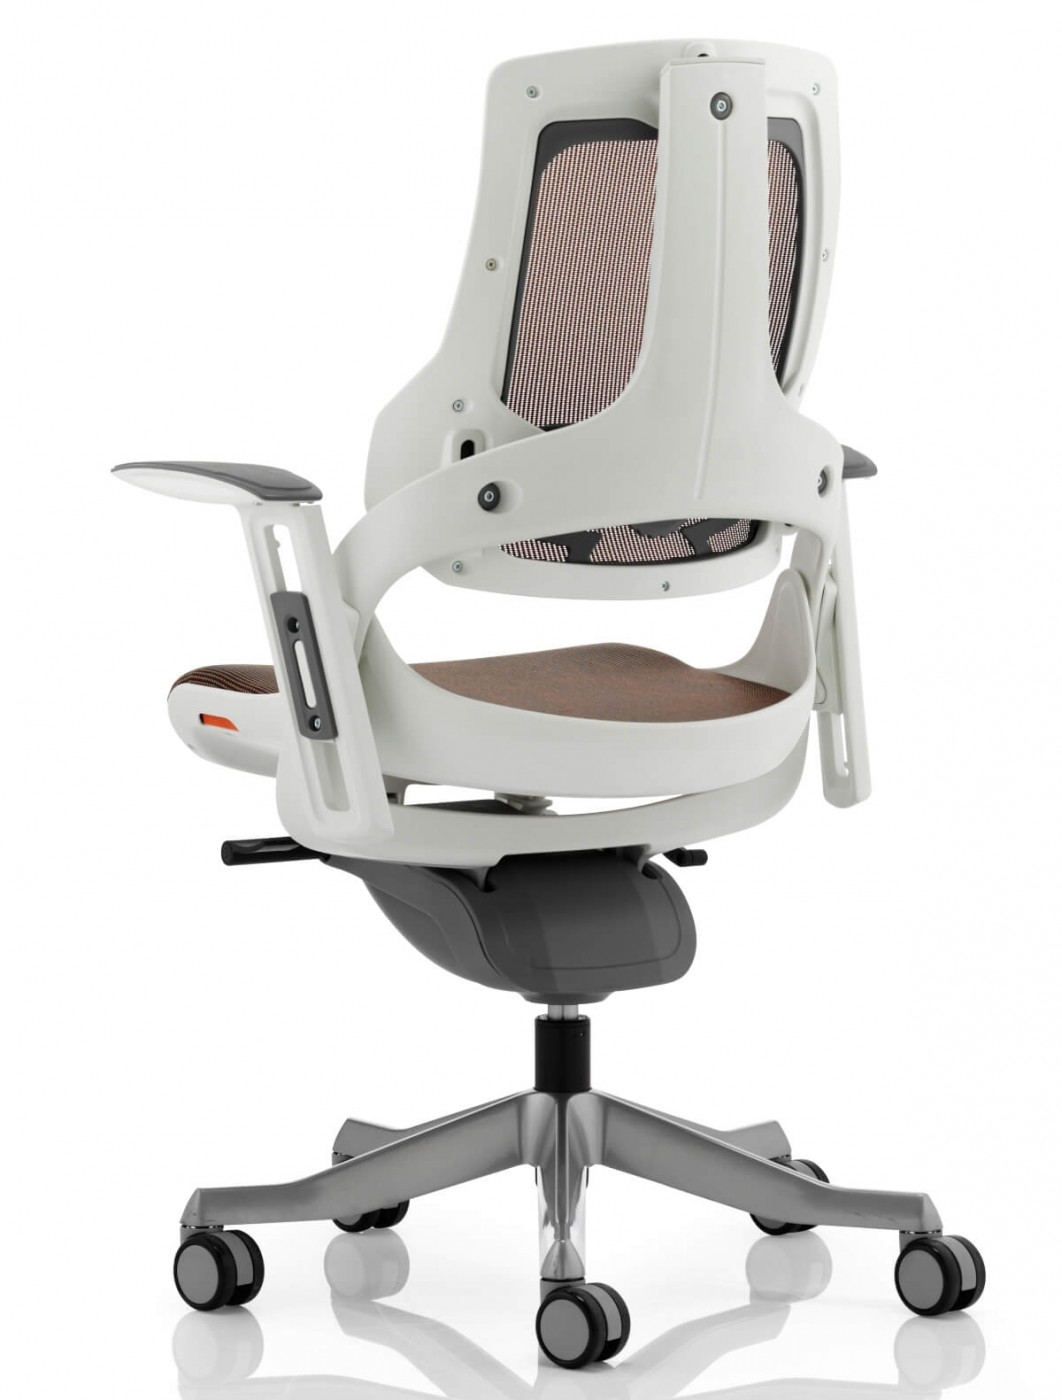 Office chairs zure mandarin executive mesh office chair ex000113 enlarged view